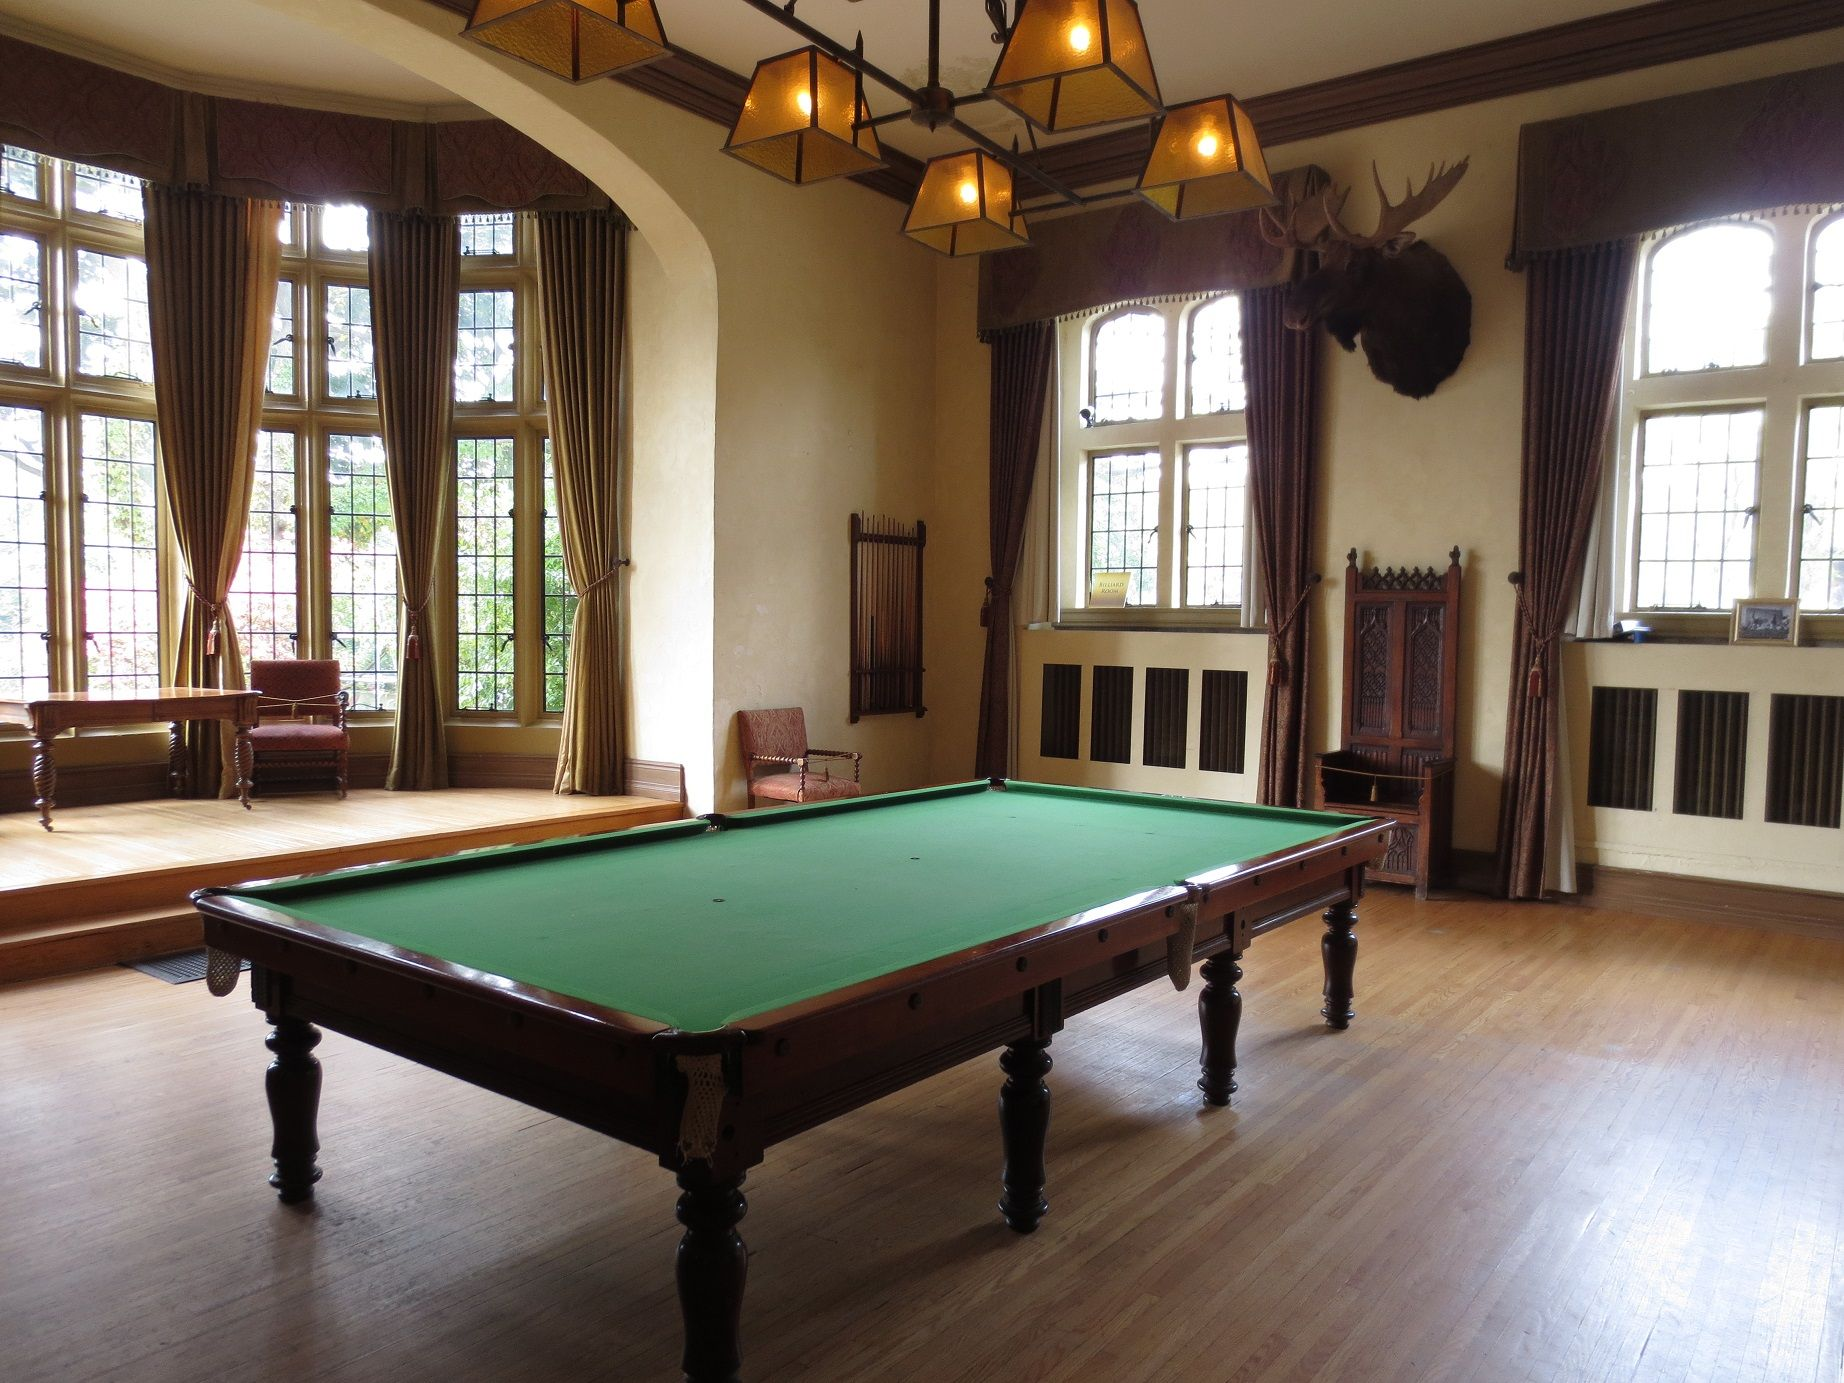 Mansion pool table casa loma toronto source http www for Casa loma mansion toronto